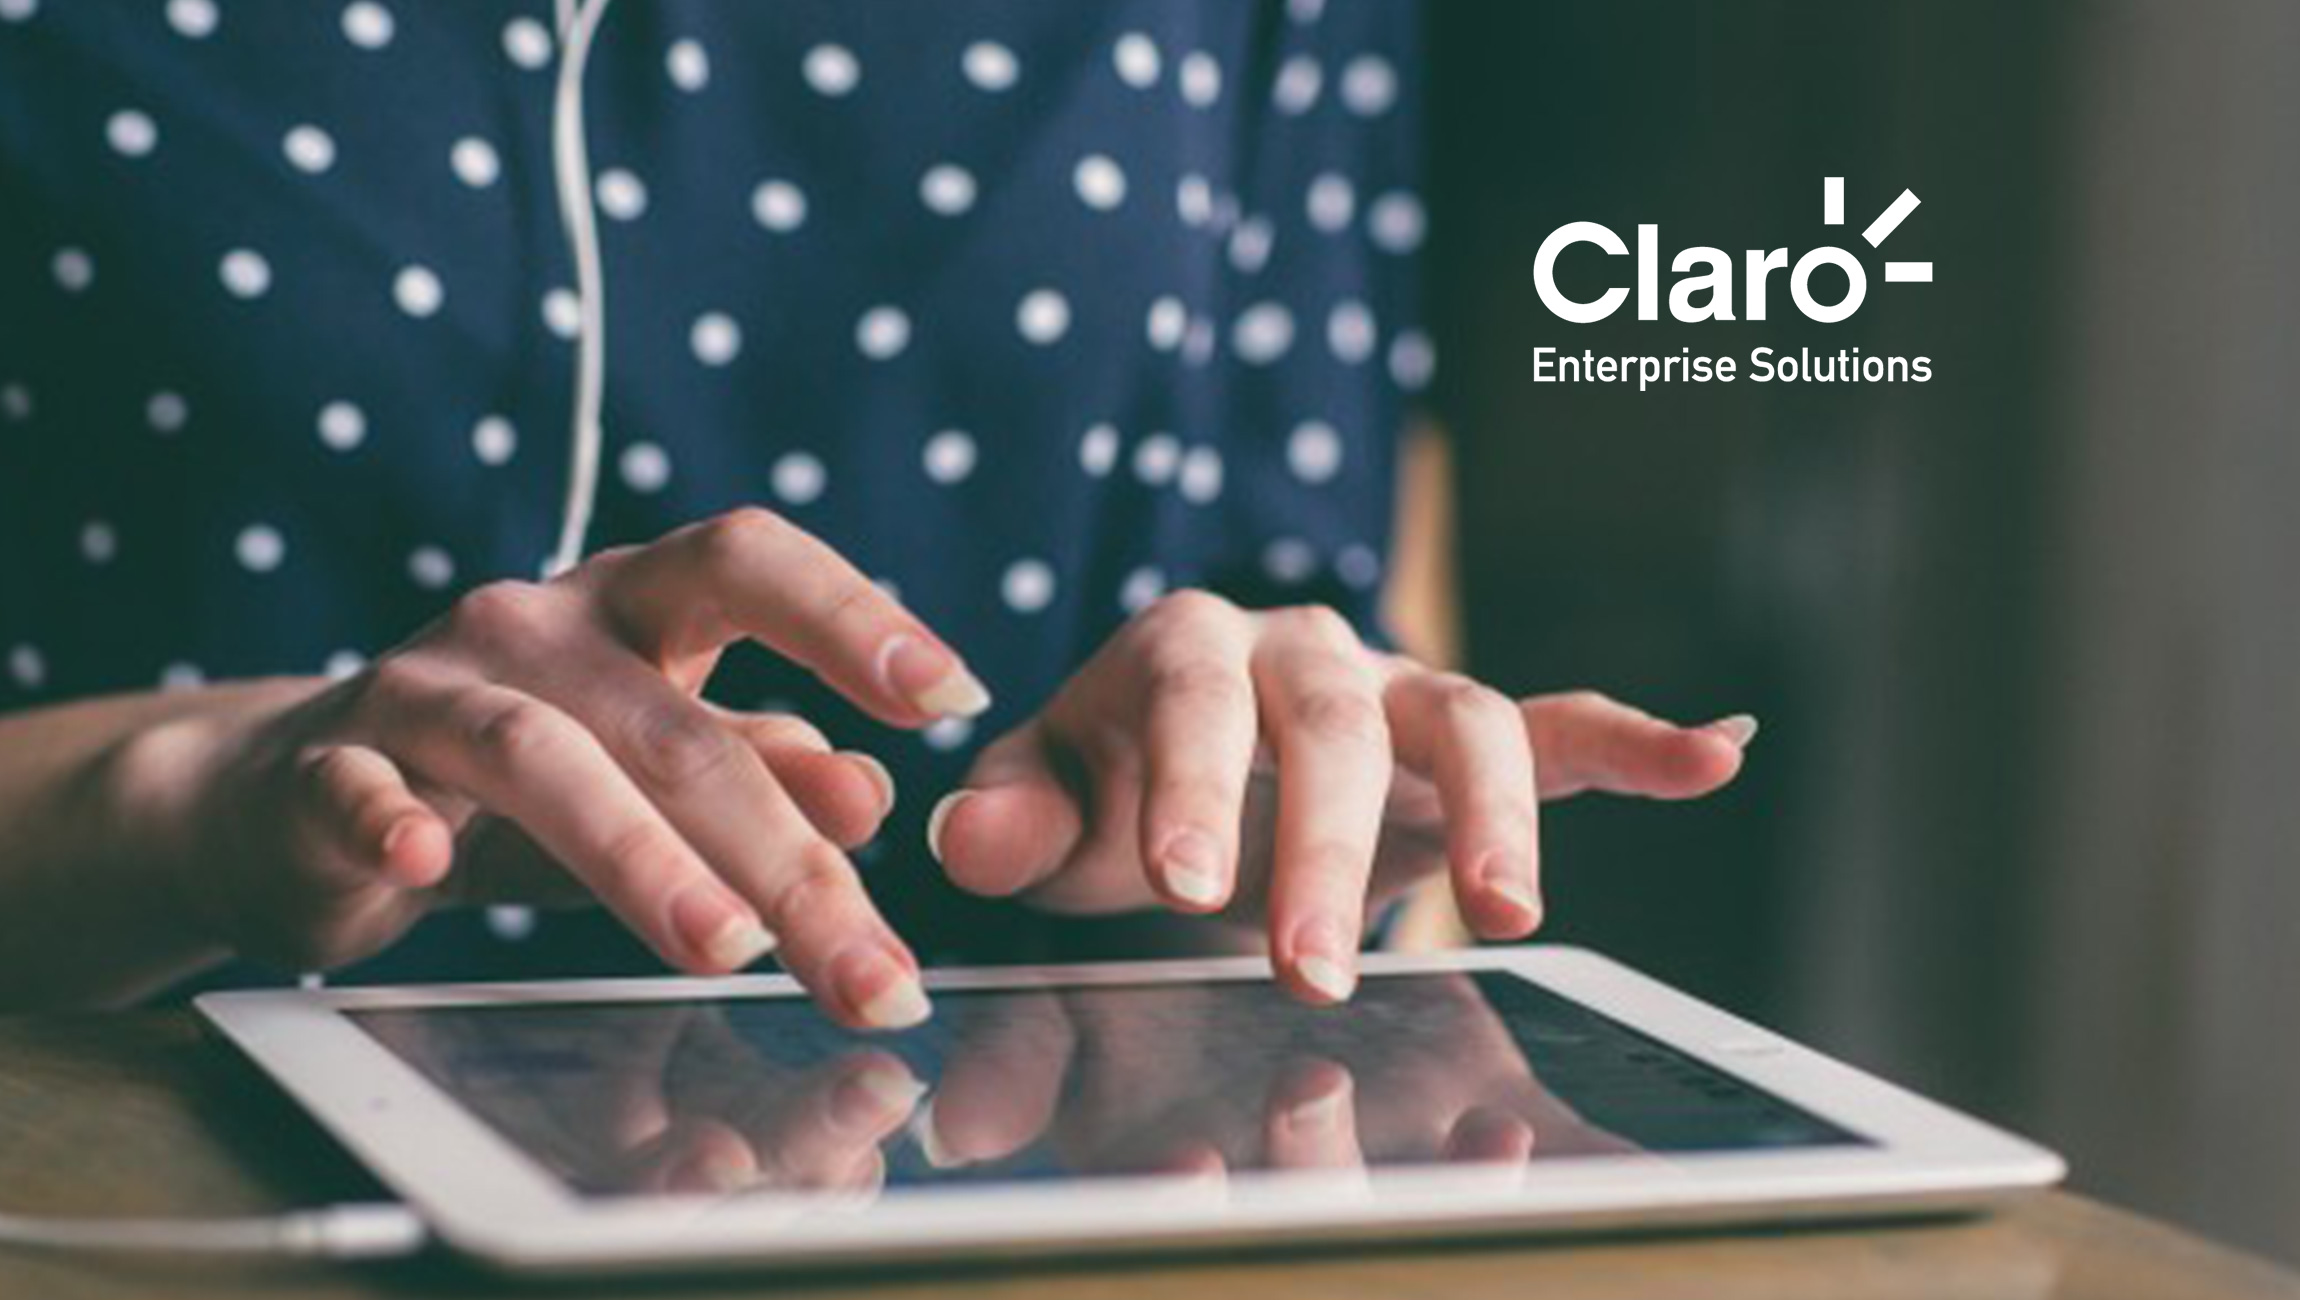 """Claro Enterprise Solutions and The CMO Club Partner to Produce """"Social Media Playbook"""""""